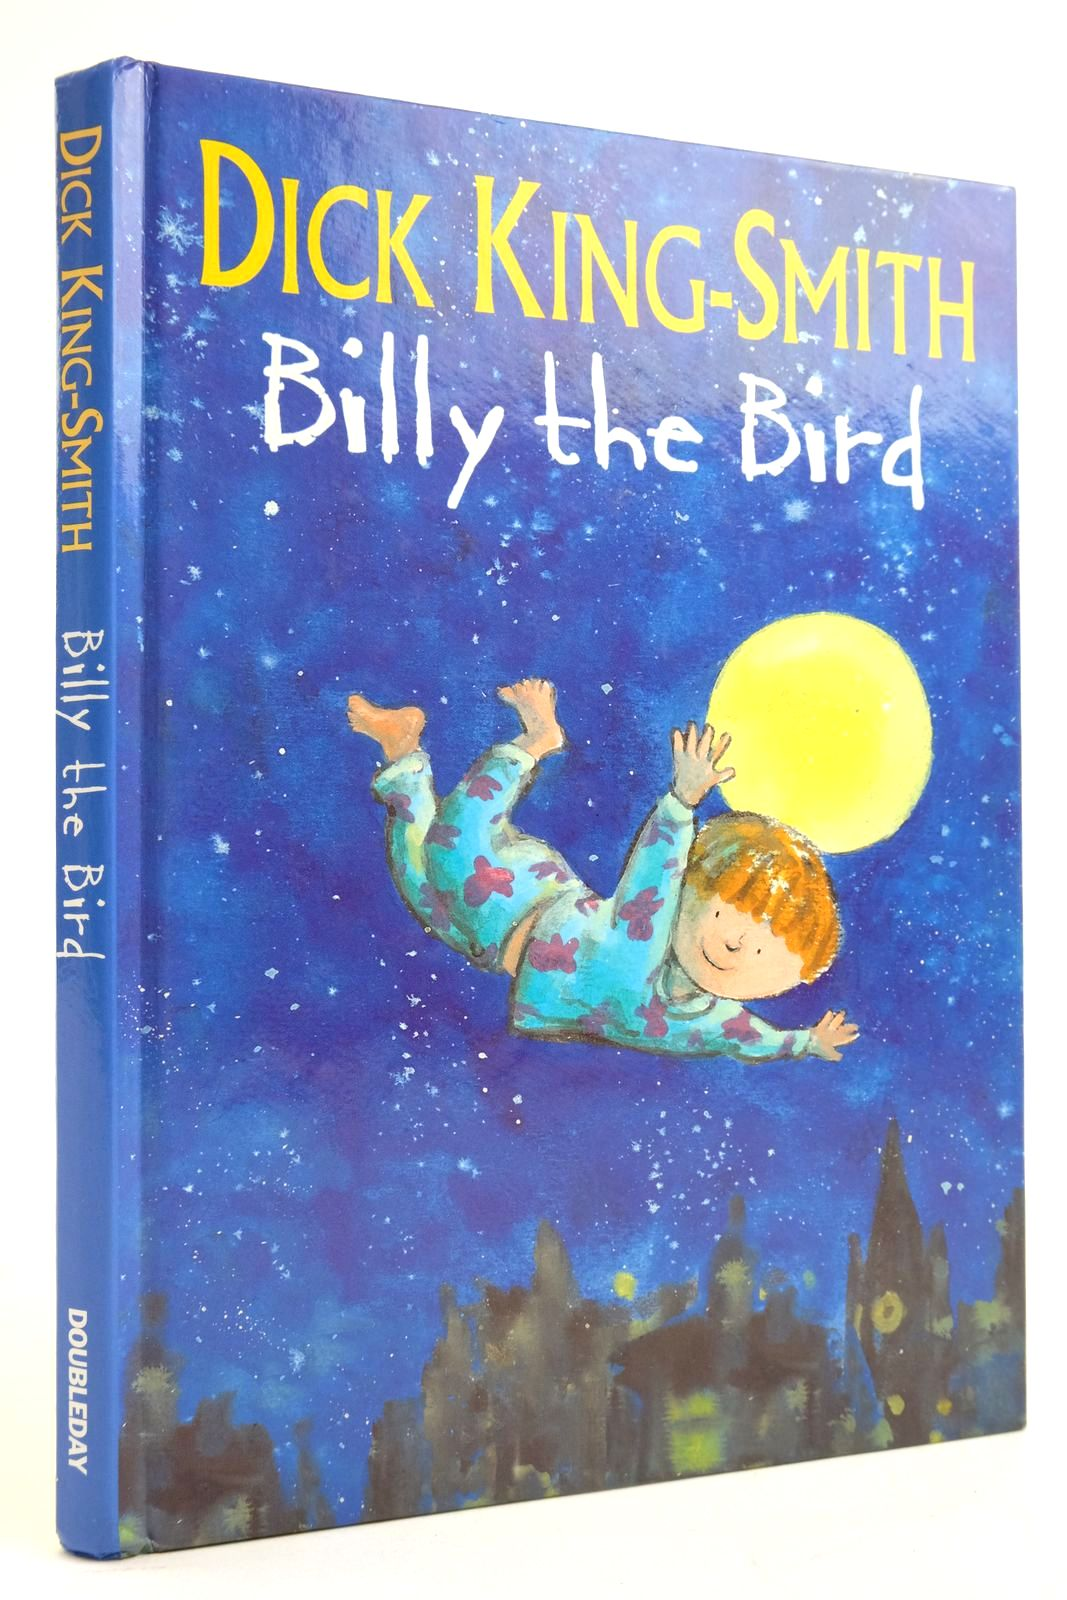 Photo of BILLY THE BIRD written by King-Smith, Dick illustrated by Eastwood, John published by Doubleday (STOCK CODE: 2135466)  for sale by Stella & Rose's Books